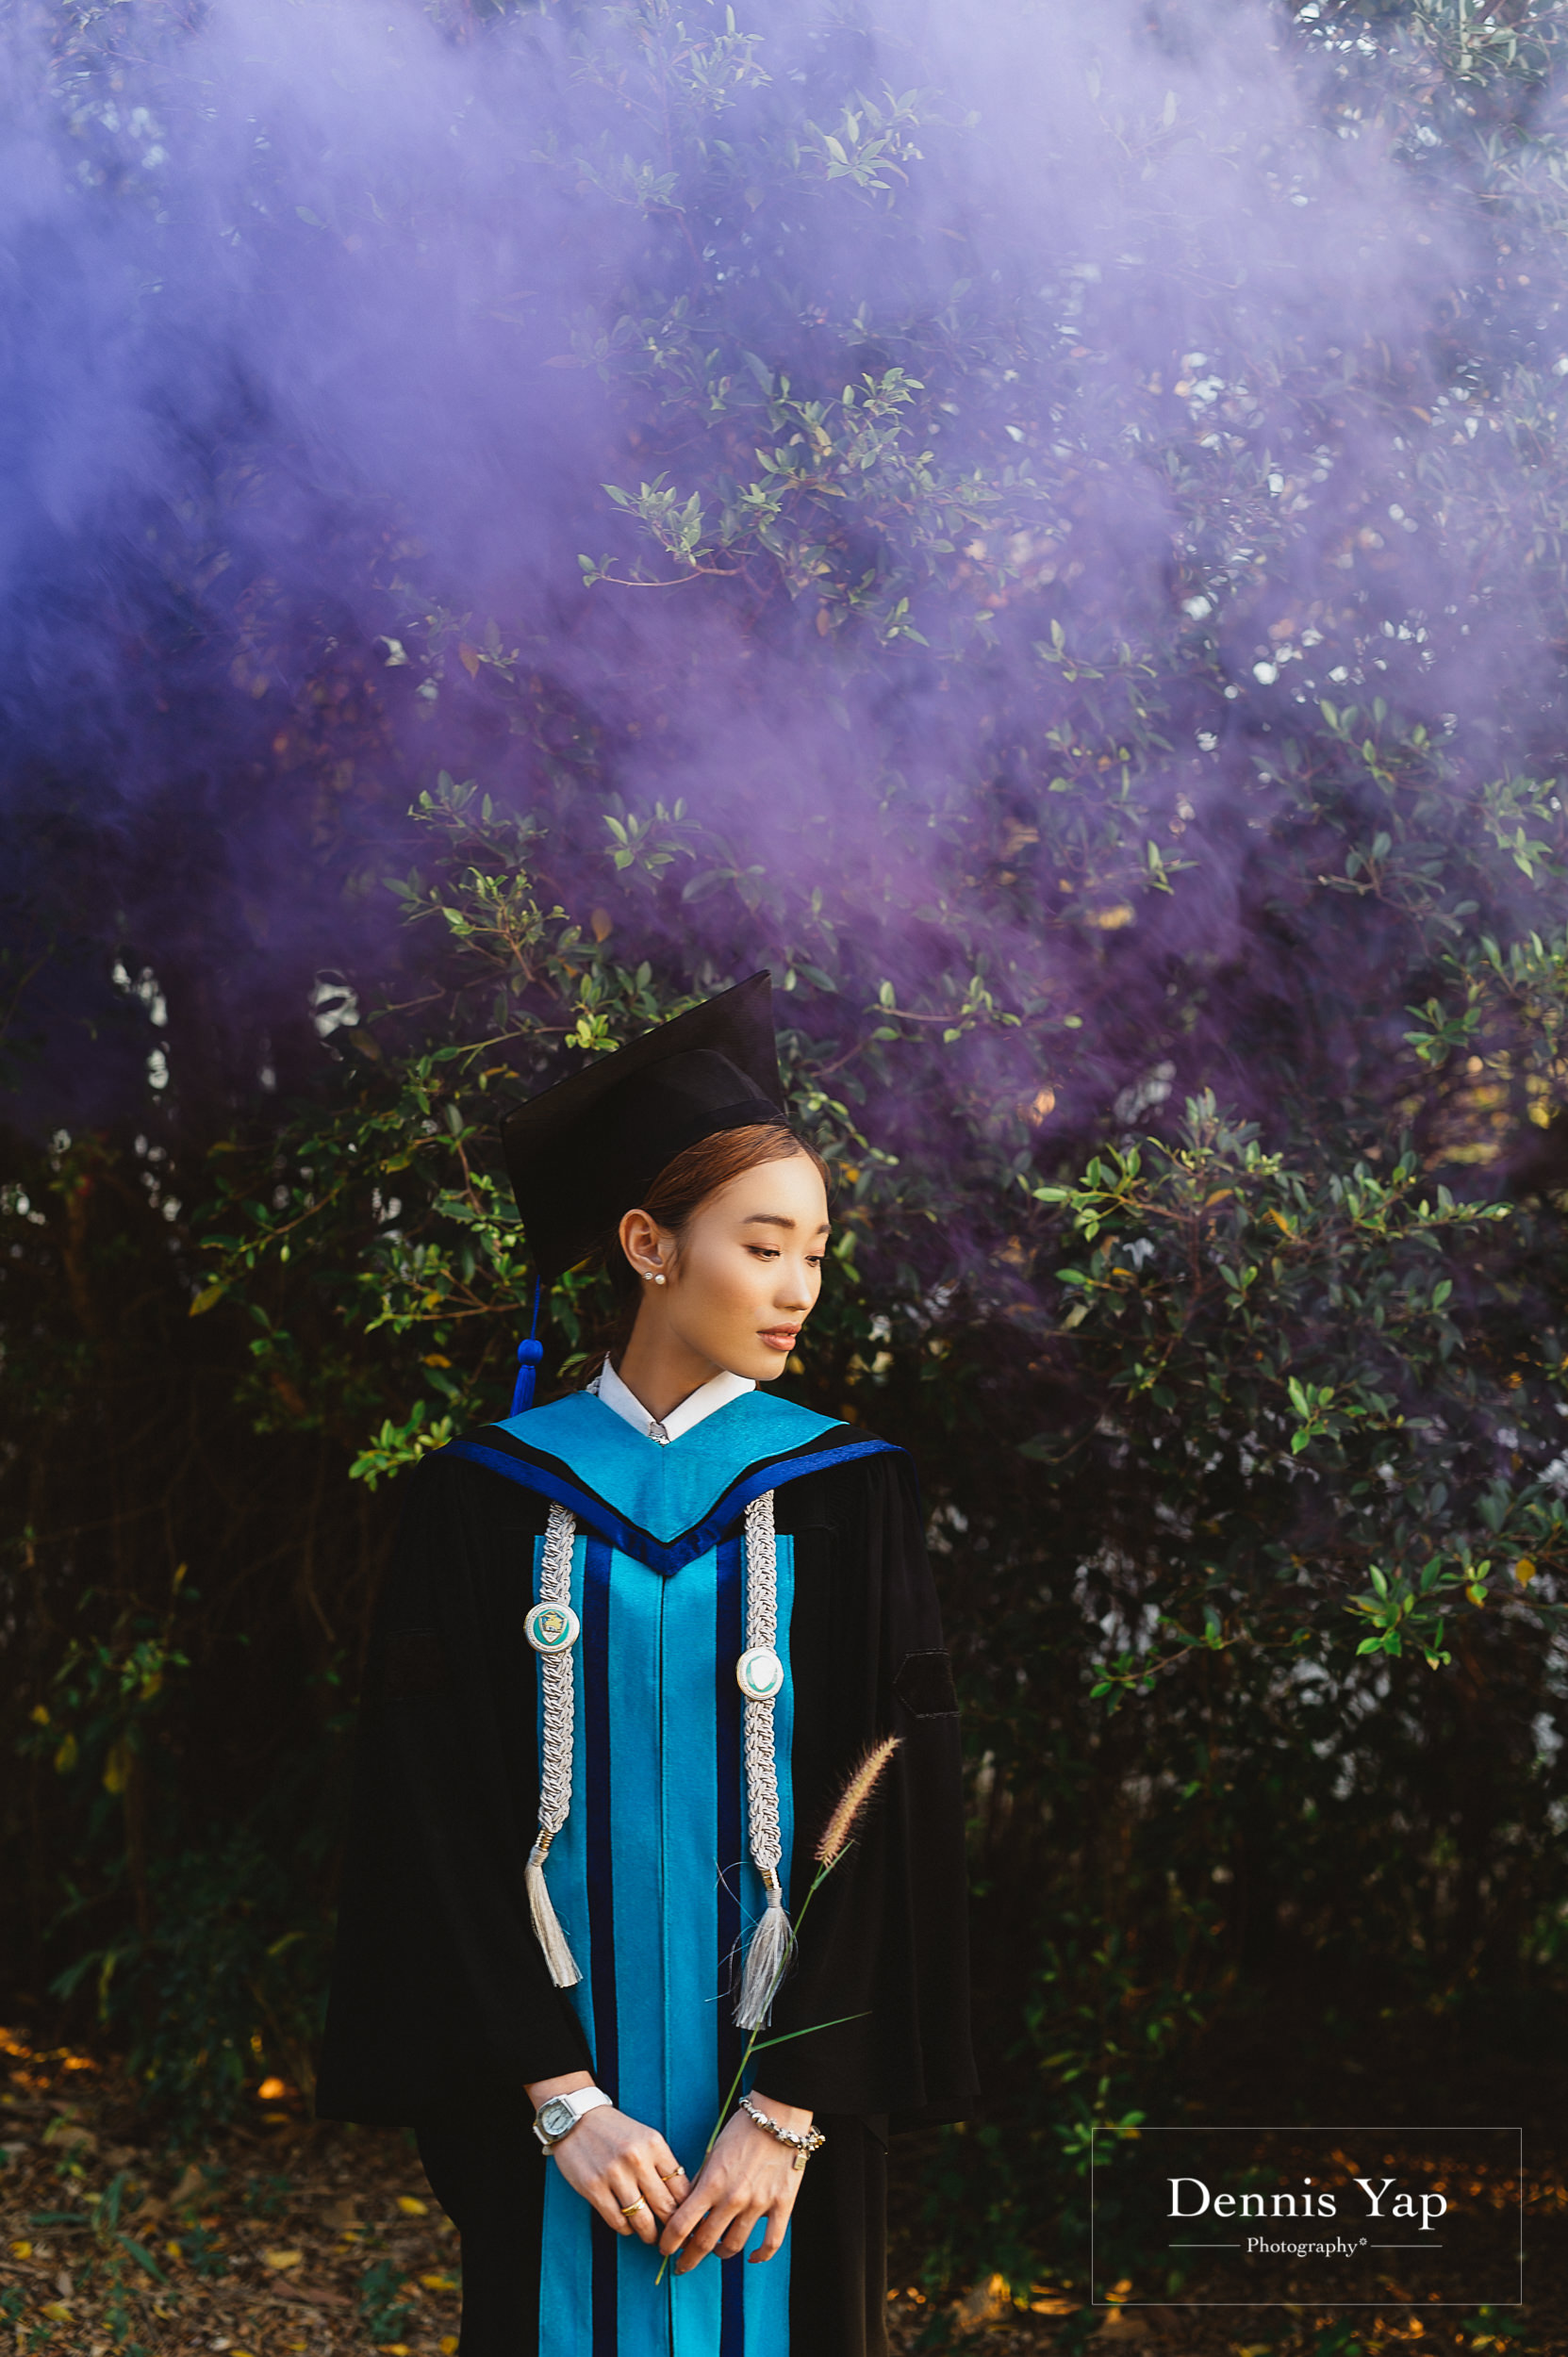 poppy graduation smoke conceptual thai chambers of commerce dennis yap photography communication art second class honor-9.jpg